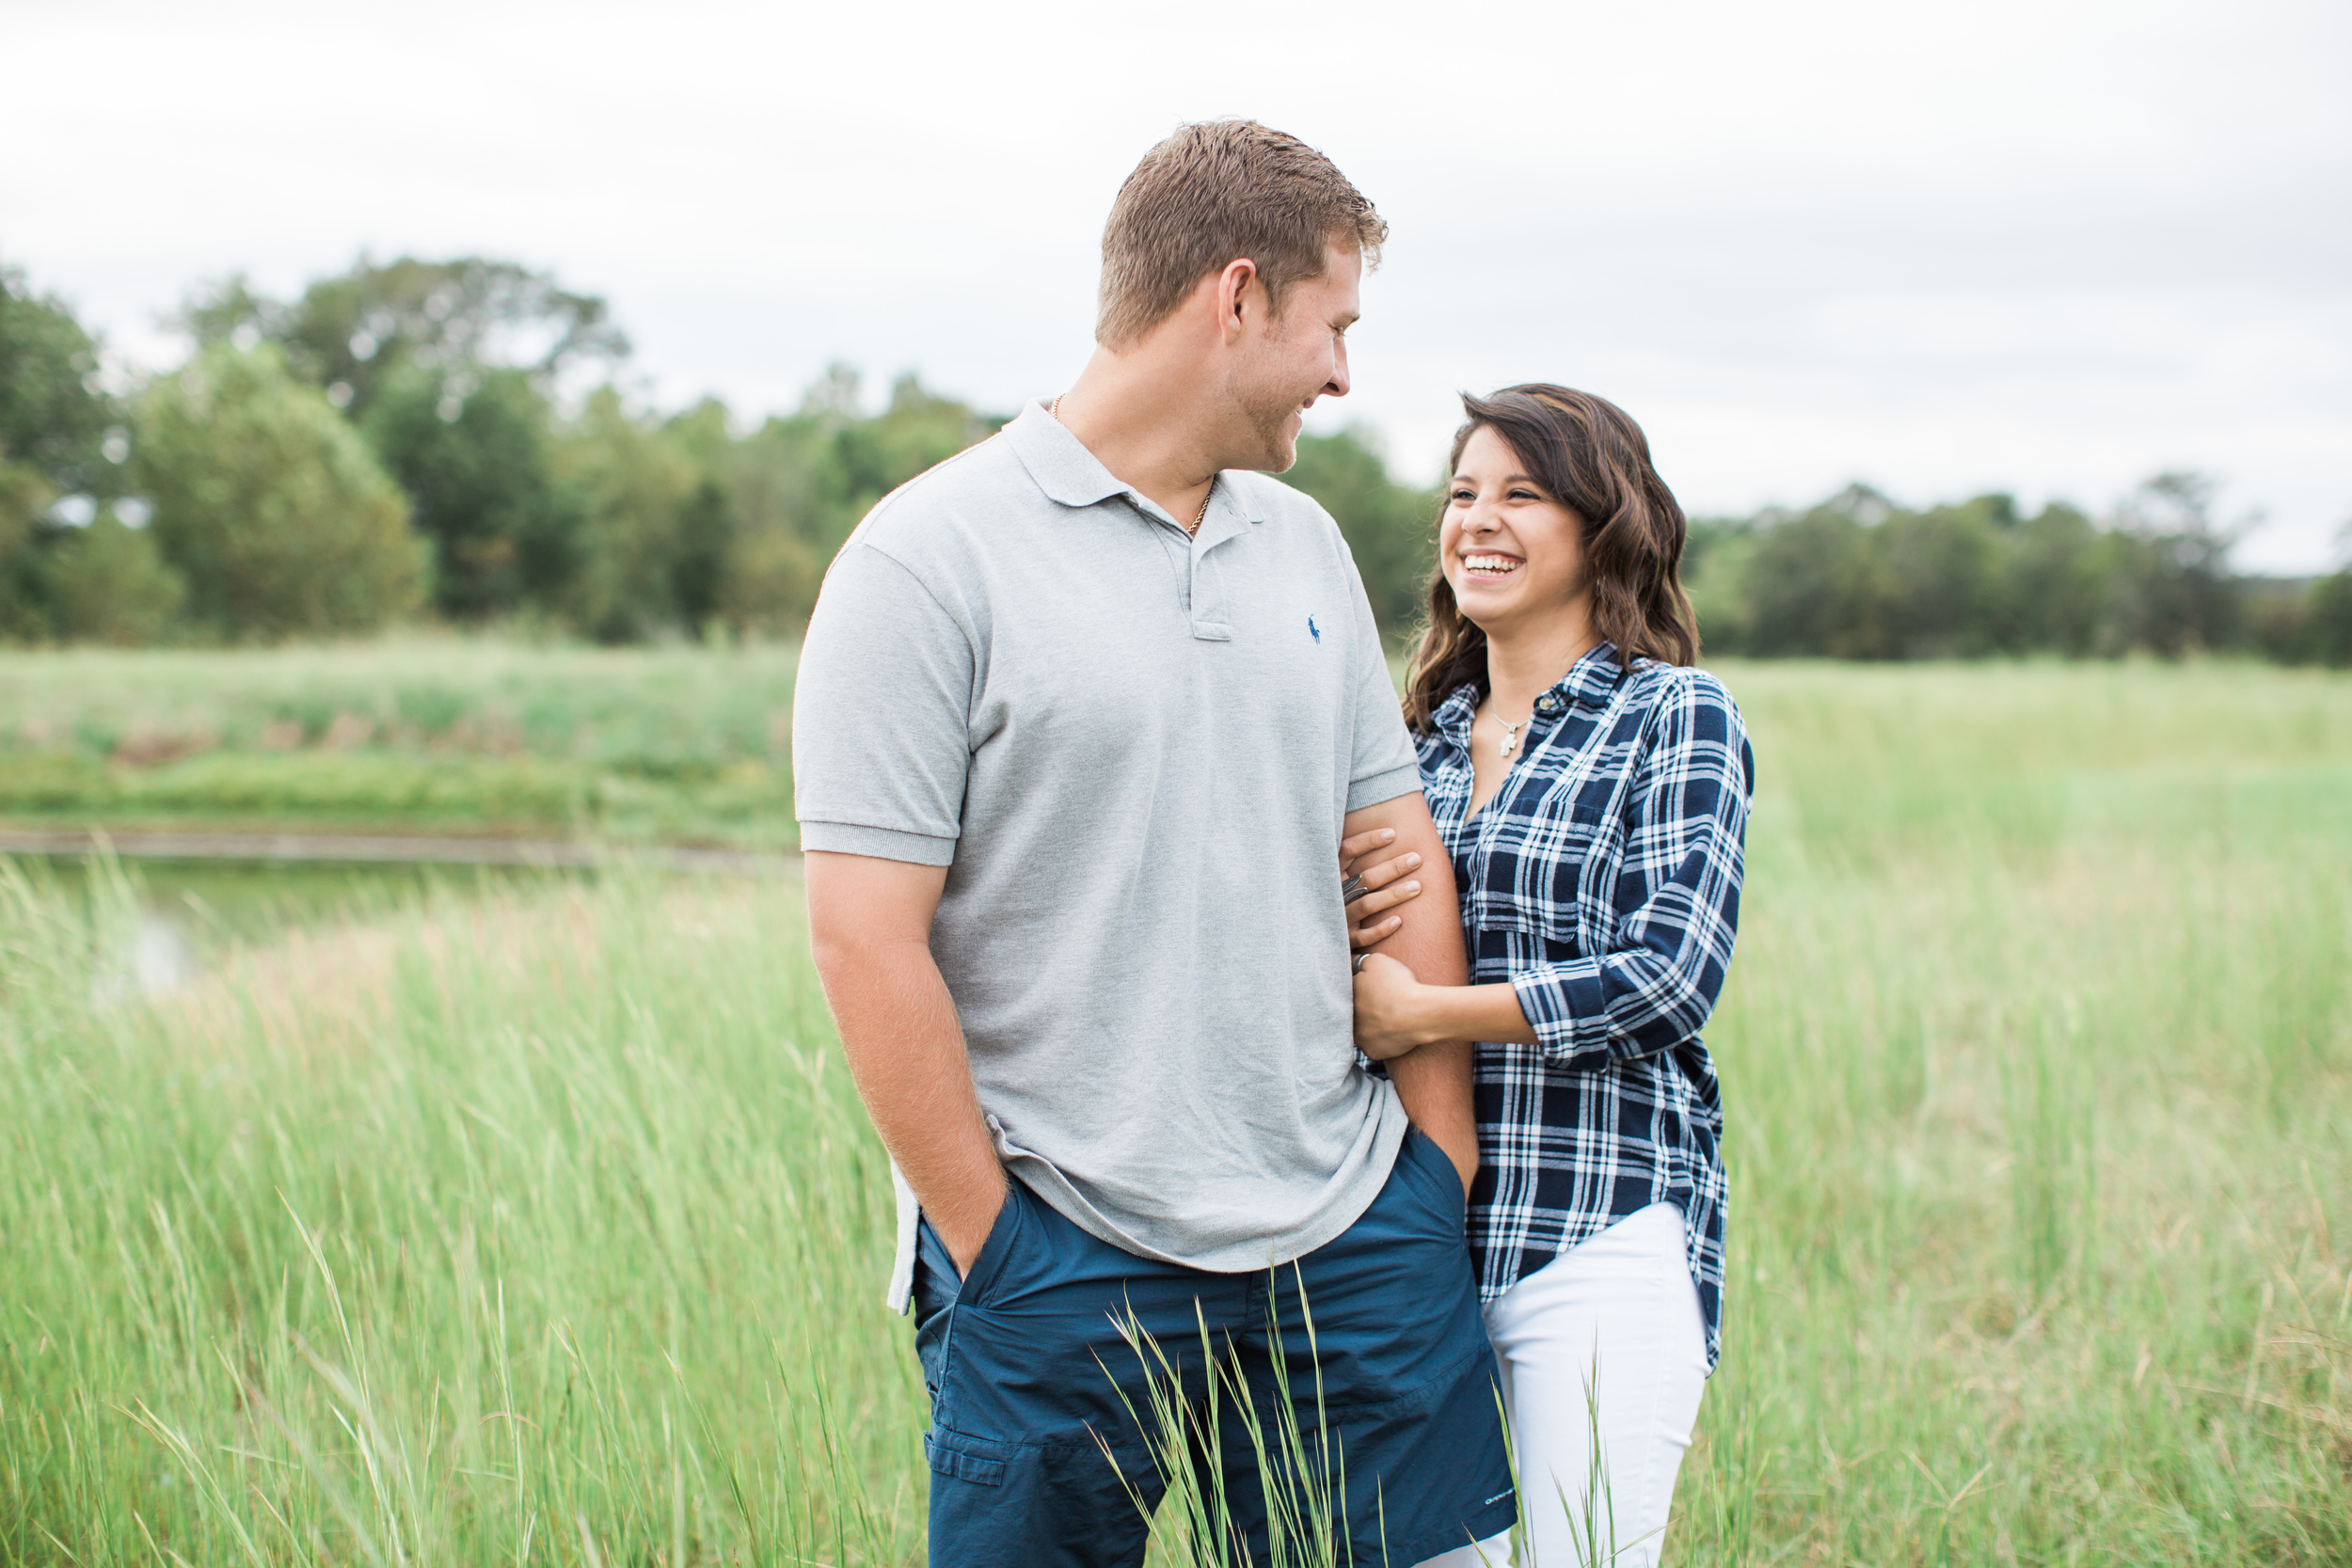 Selma-Alabama-Wedding-Photography-Engagements-Jessica-George-11.jpg